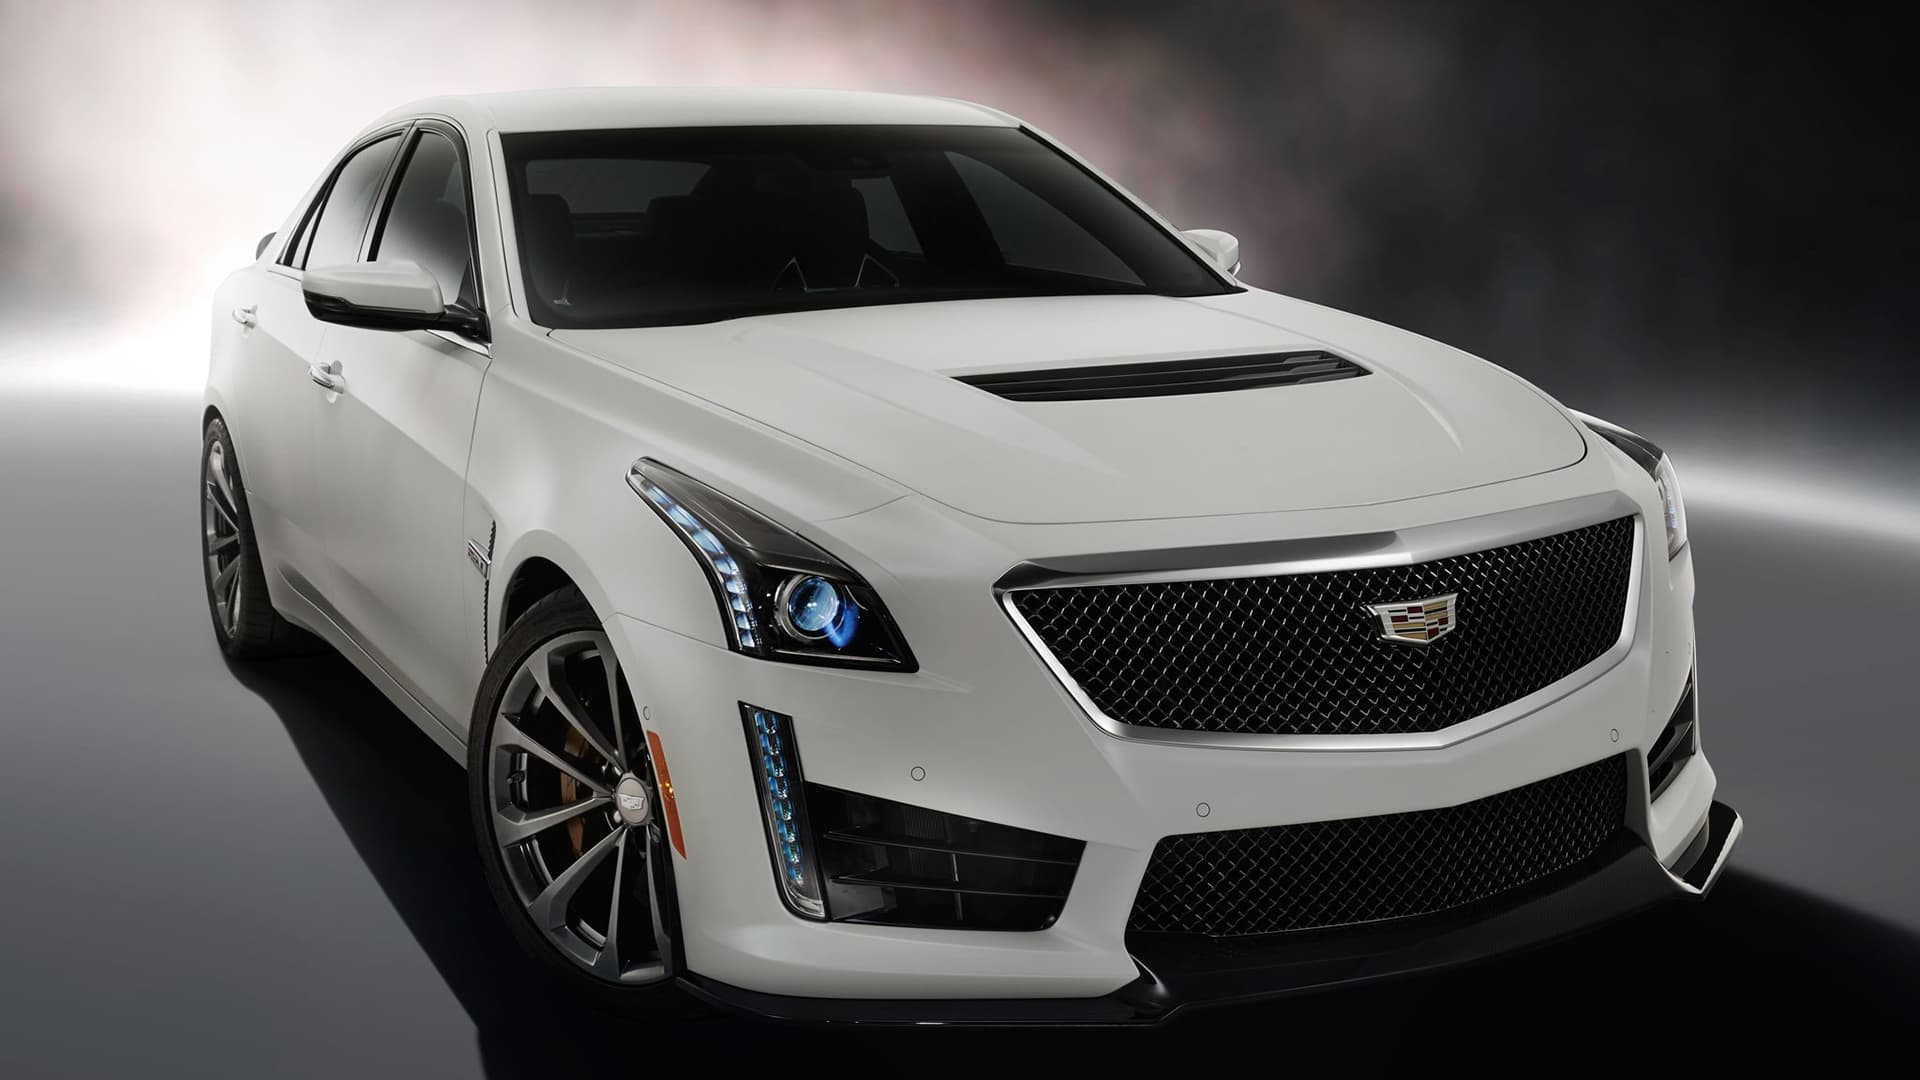 2016 Cadillac CTS-V wallpapers HD High Quality Resolution